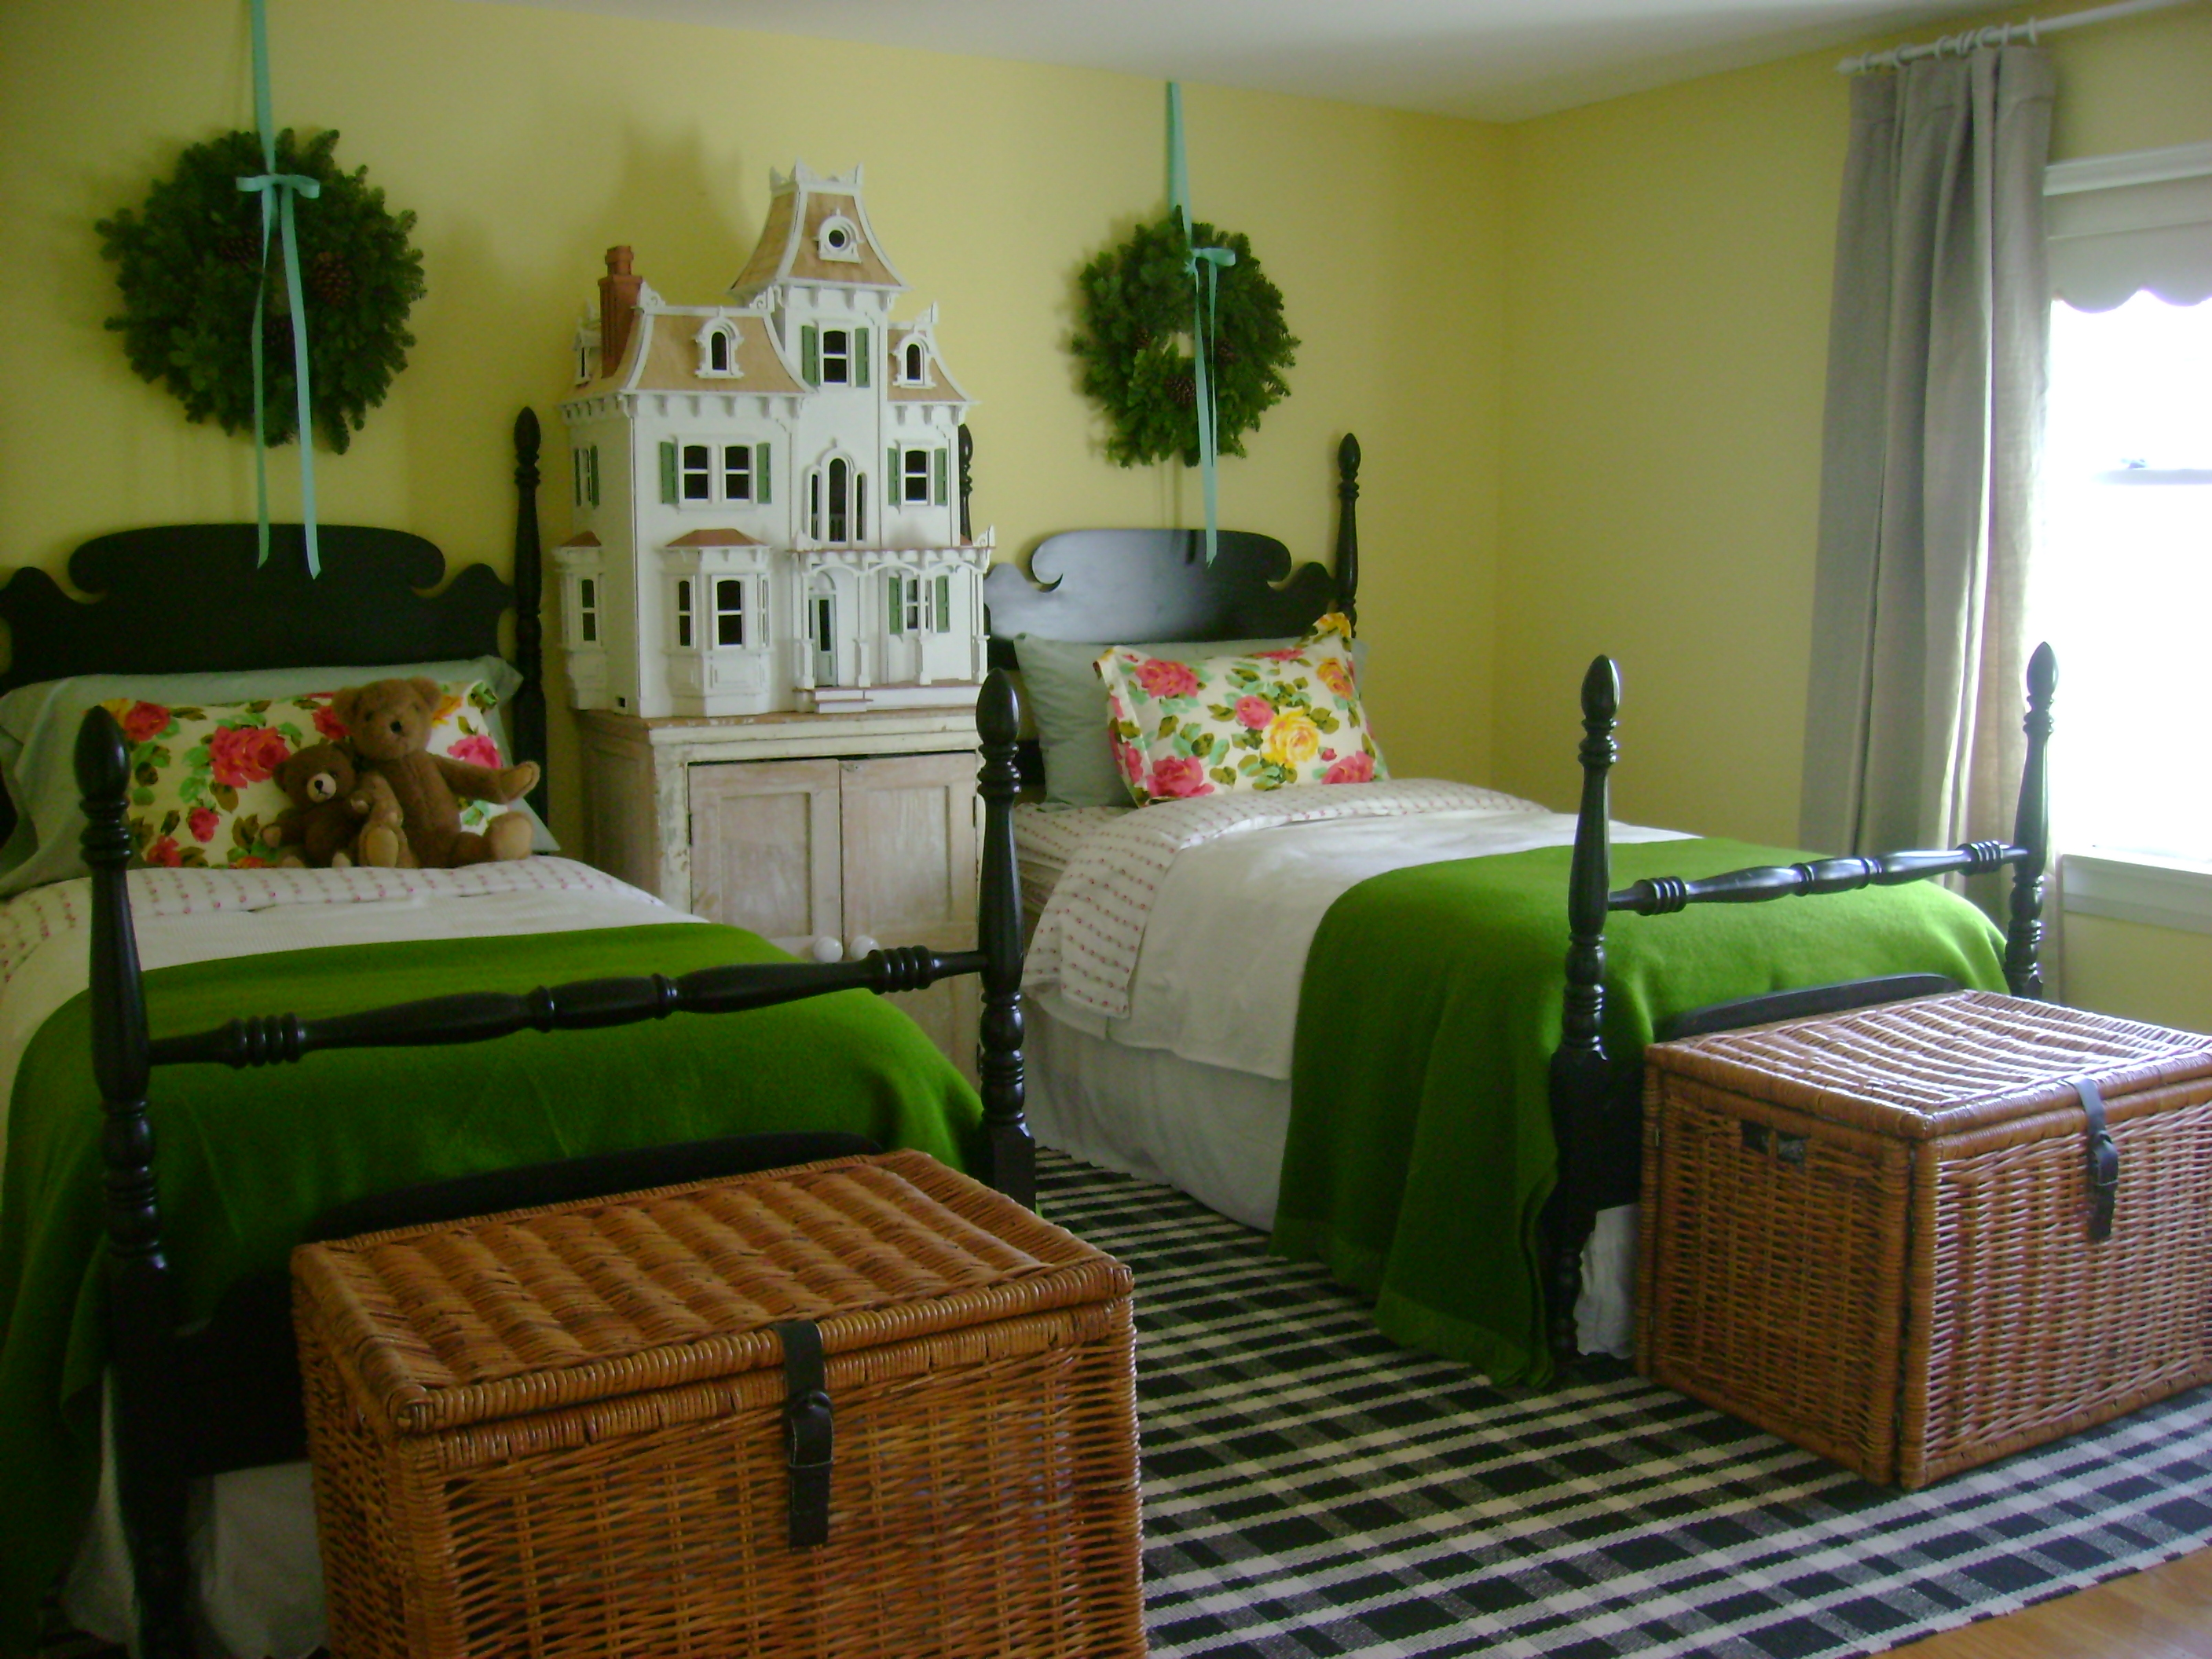 The guest room with cozy wool blankets and Sara's dollhouse and wreaths for that festive feeling